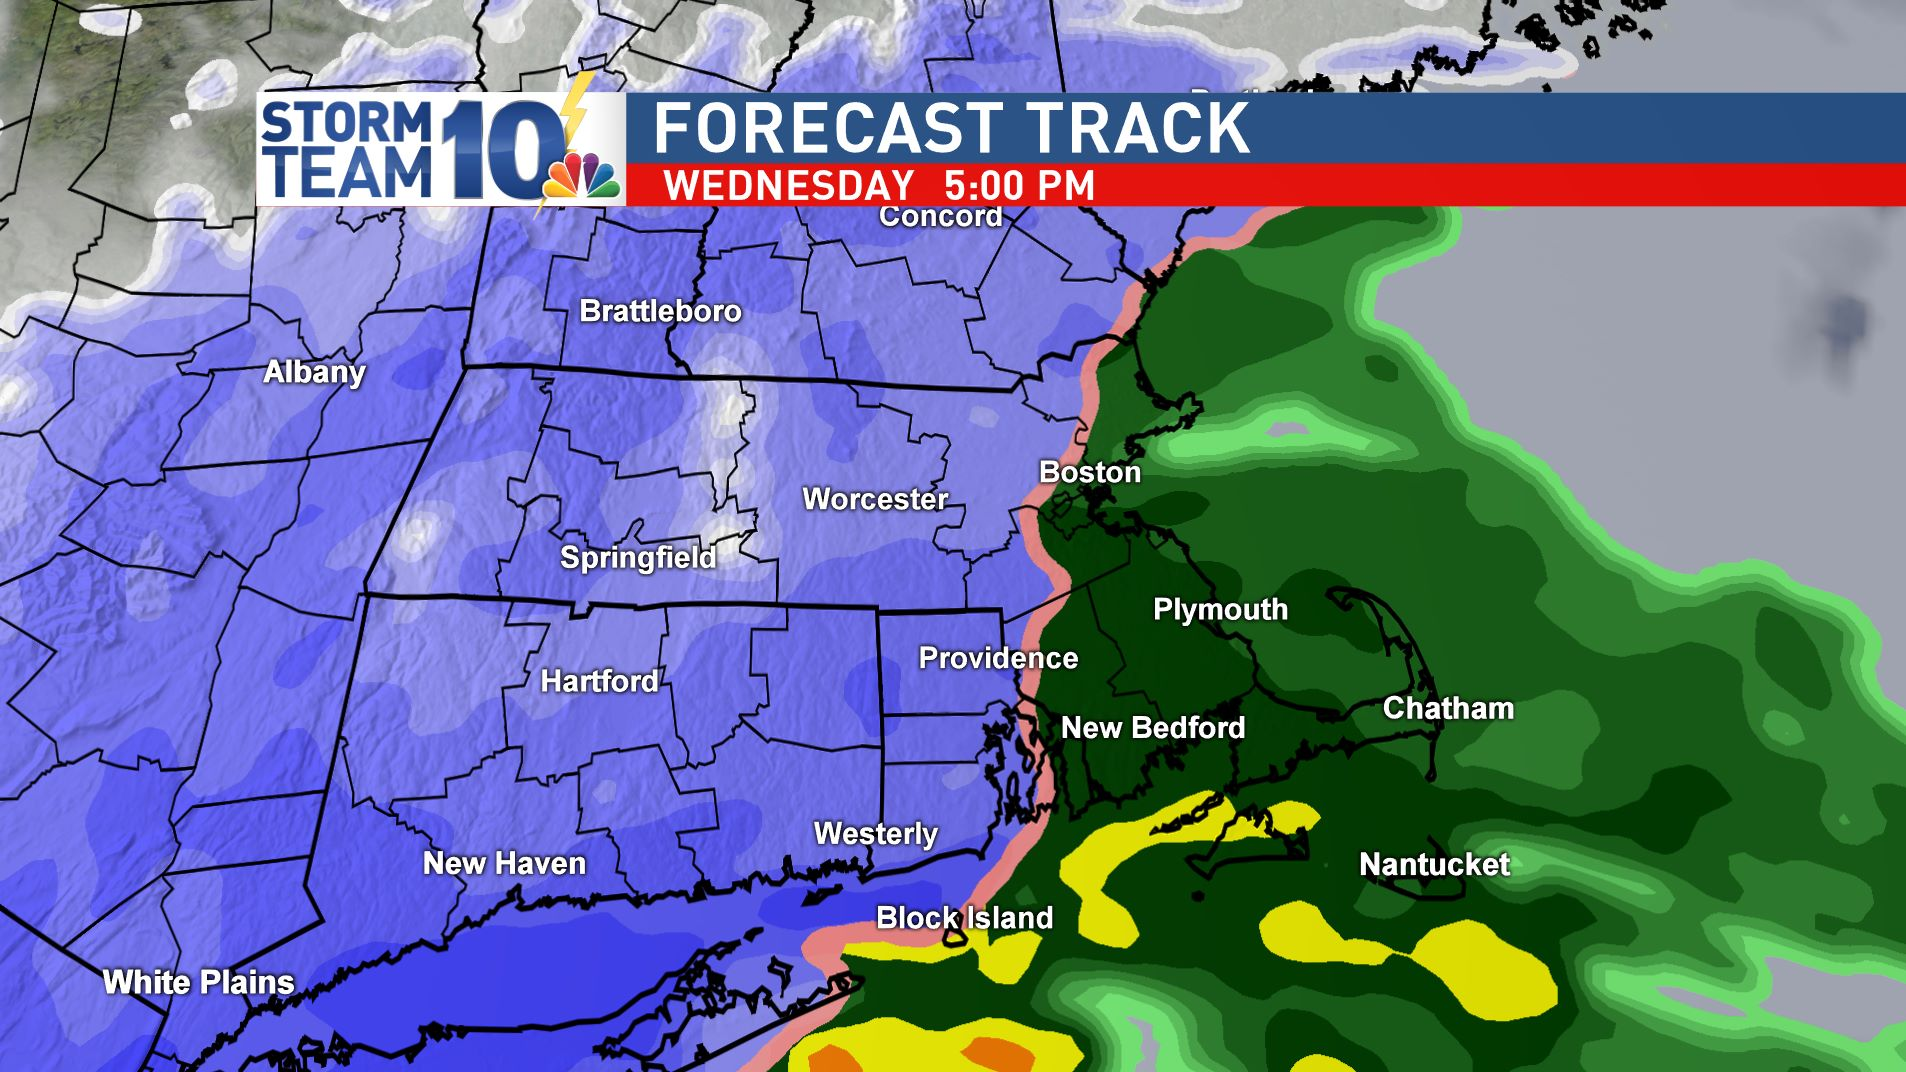 Snow AND rain will impact the Wednesday evening commute